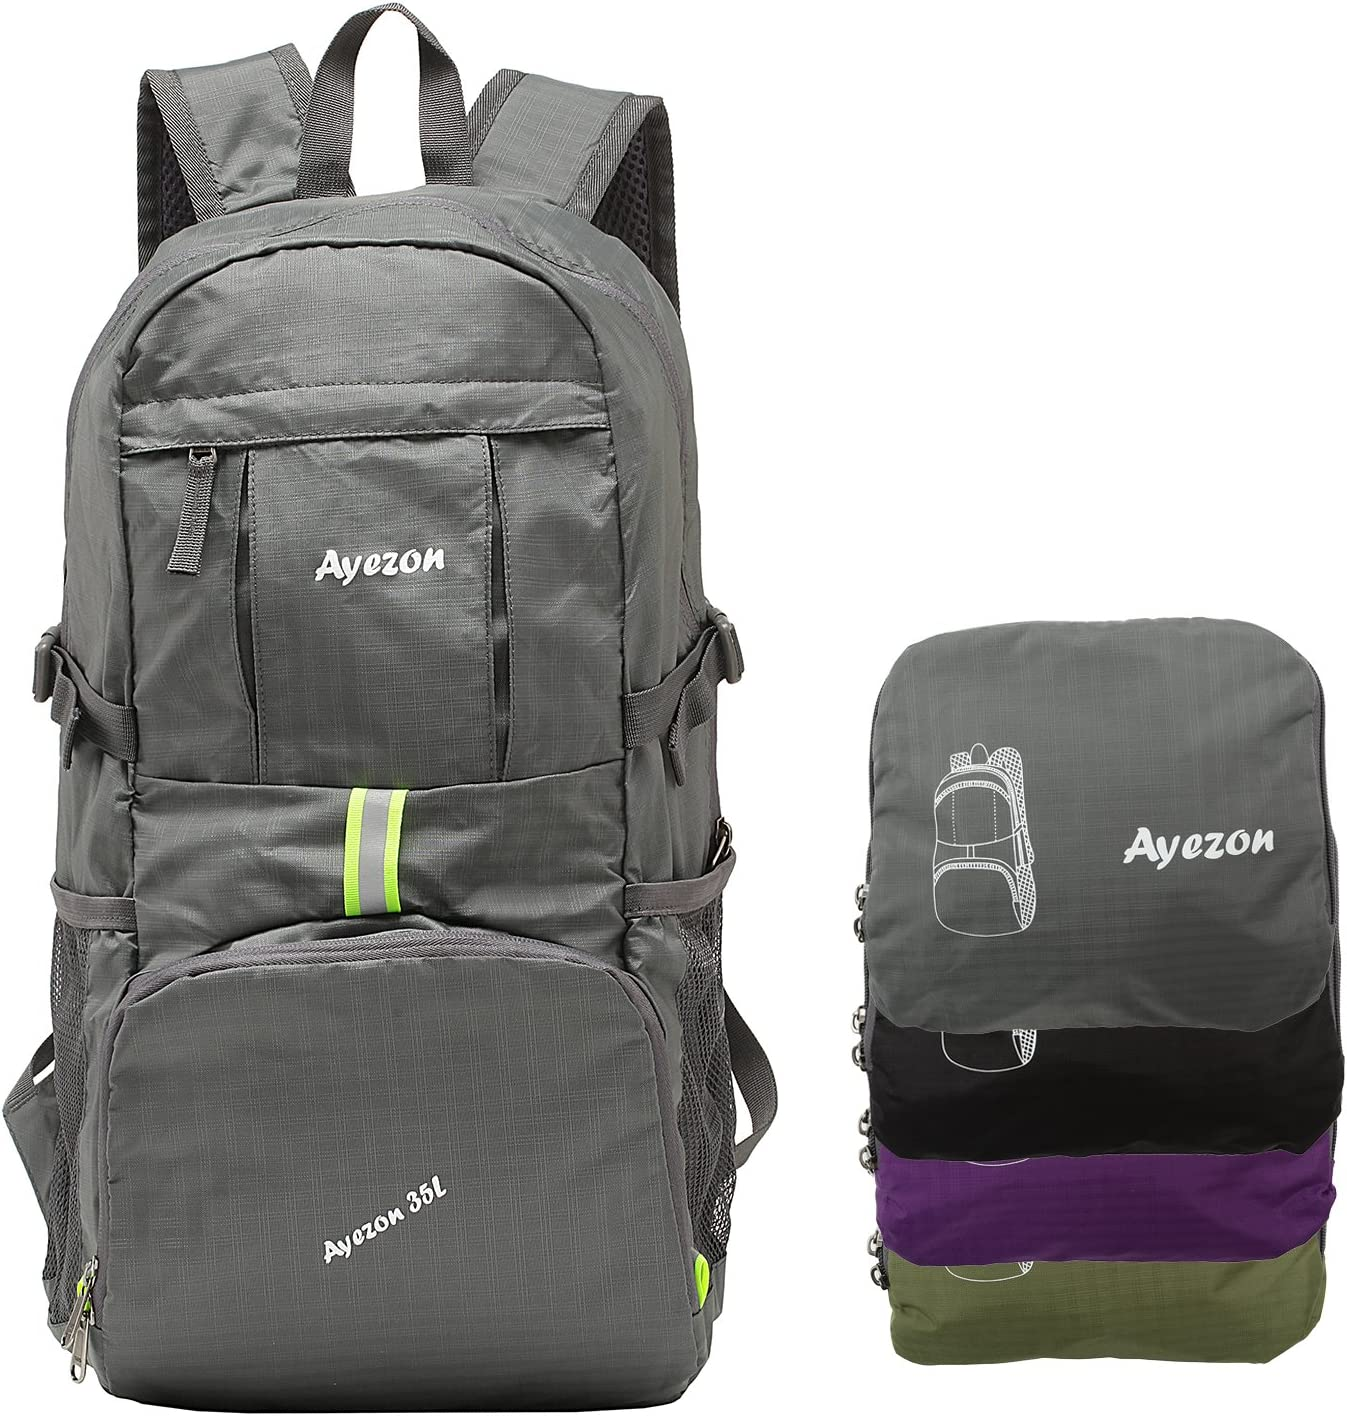 Ayezon Hiking Backpack for Travel, Beach and Outdoor, Sports Packable Backpack, Ultralight Compact Foldable Daypack 35L